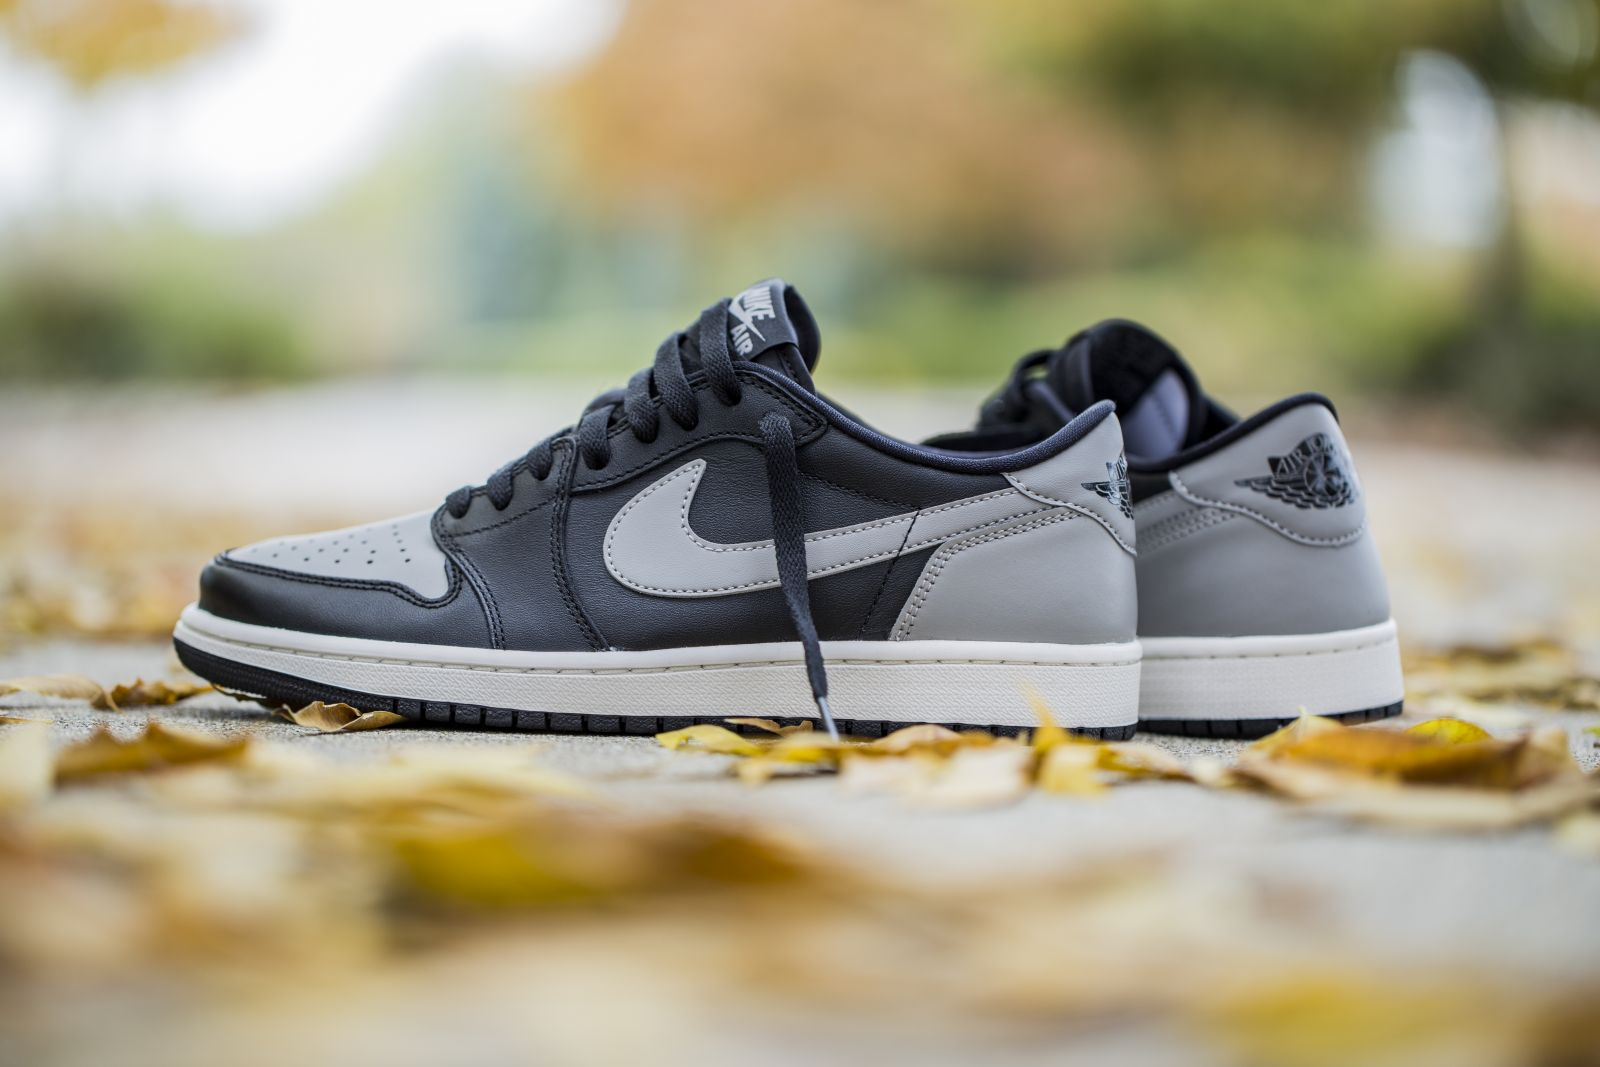 Air Jordan 1 Low Shadow